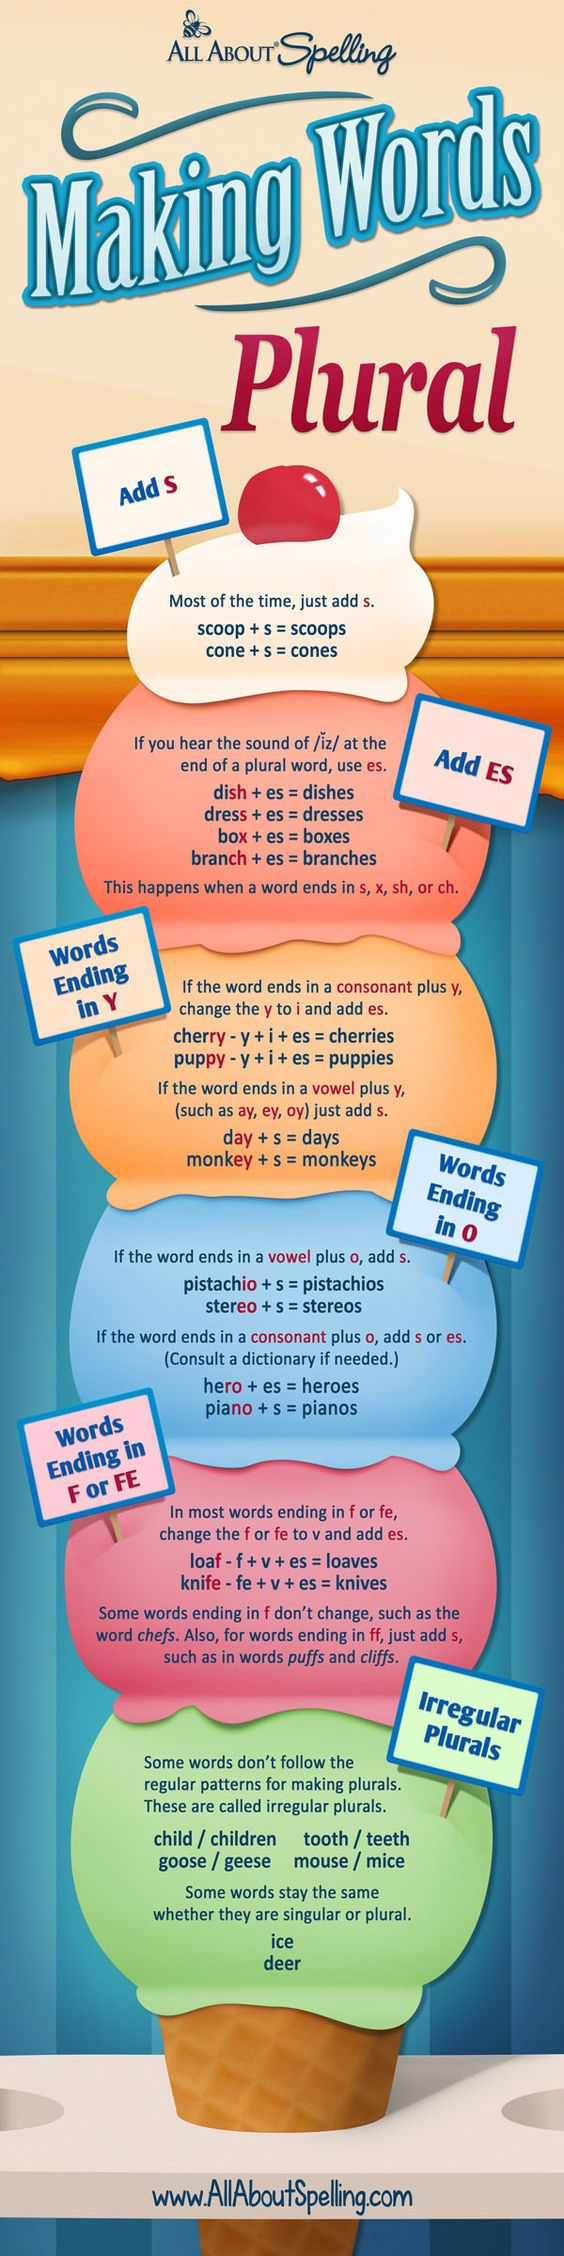 Estudia inglés en Irlanda & Collins- Making words plural.: